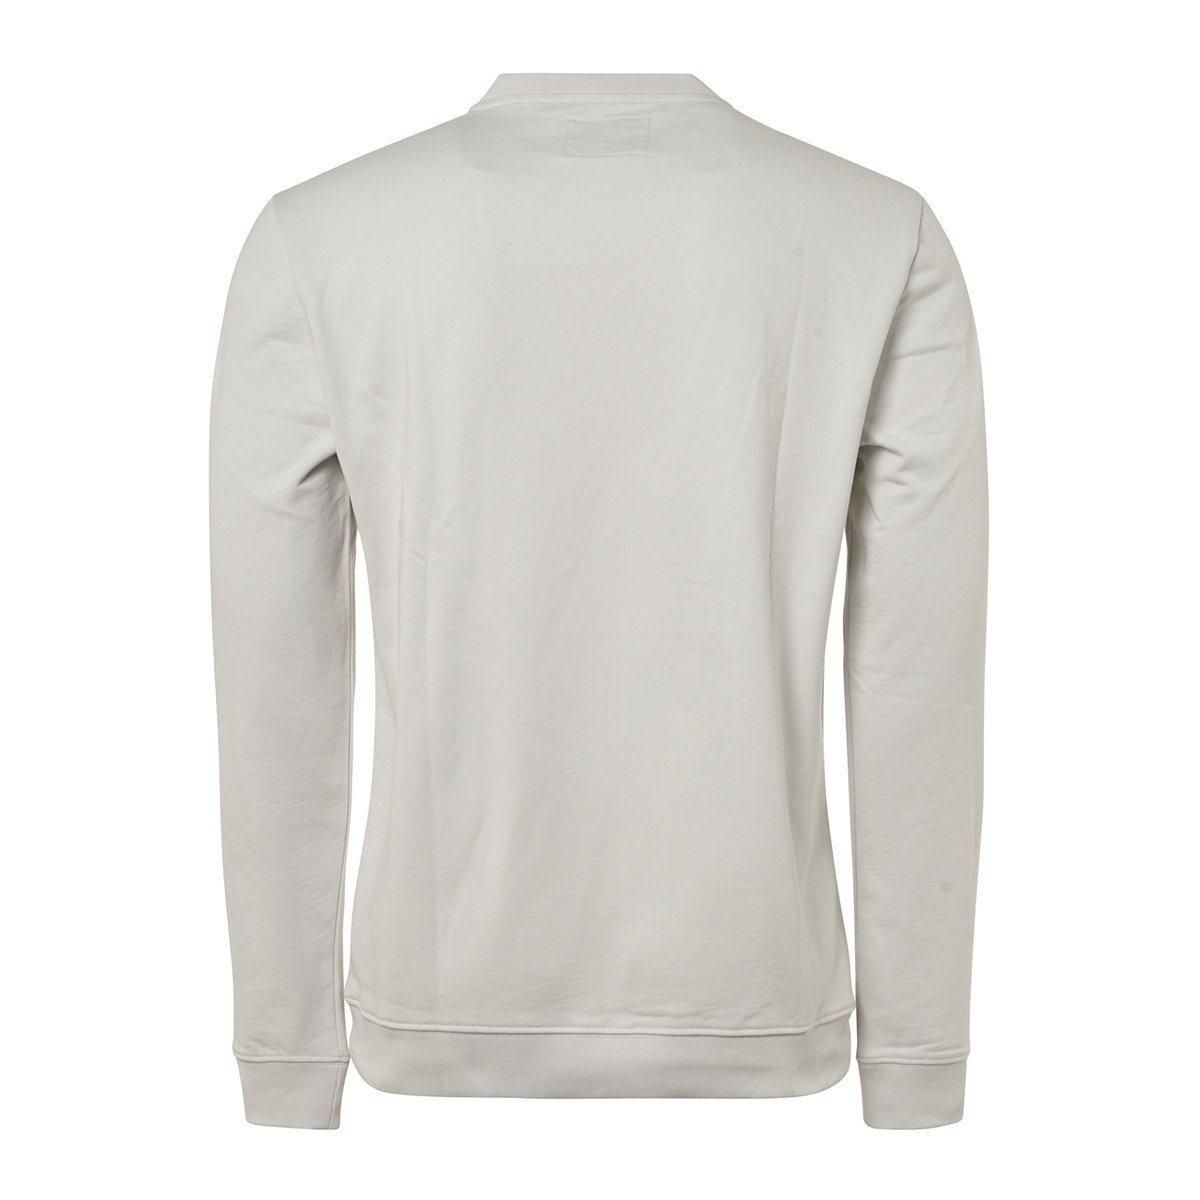 crewneck sweater with logo 92130750 no-excess sweater 017 chalk